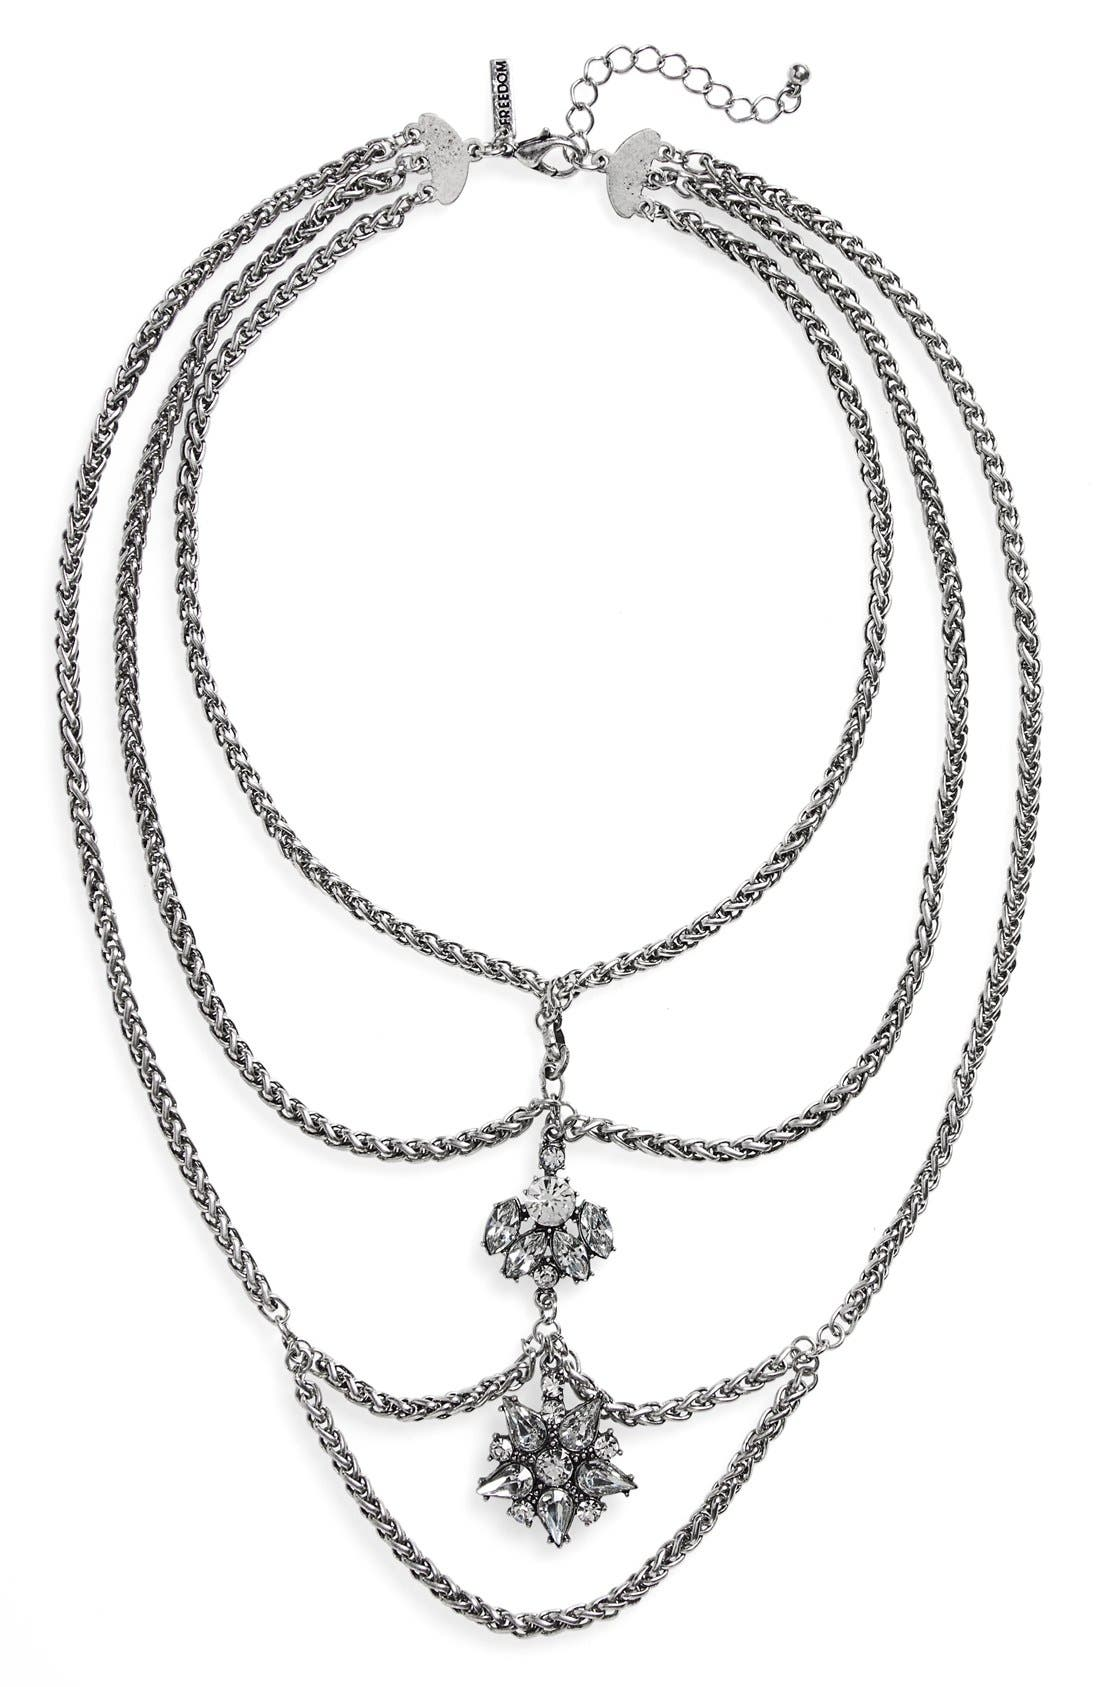 Alternate Image 1 Selected - Topshop Multi Row Chain Necklace